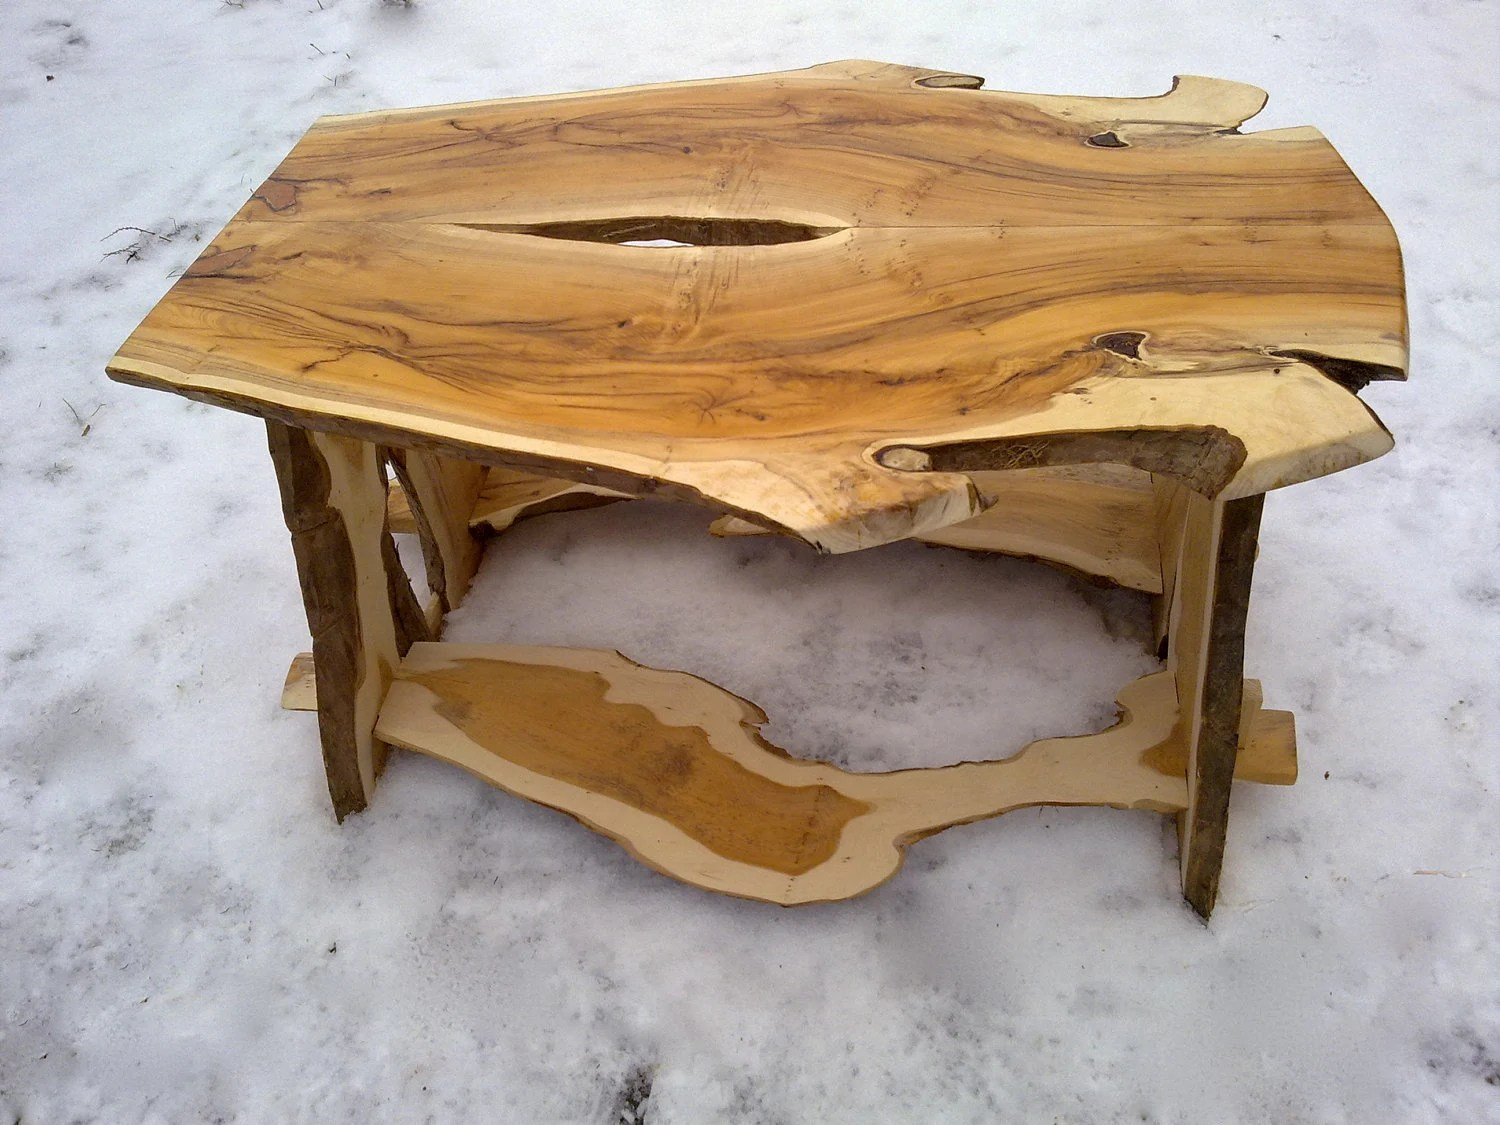 Planks Couchtisch Yew Wood Coffee Table Made From Bookmatched By Benjaminsbarn